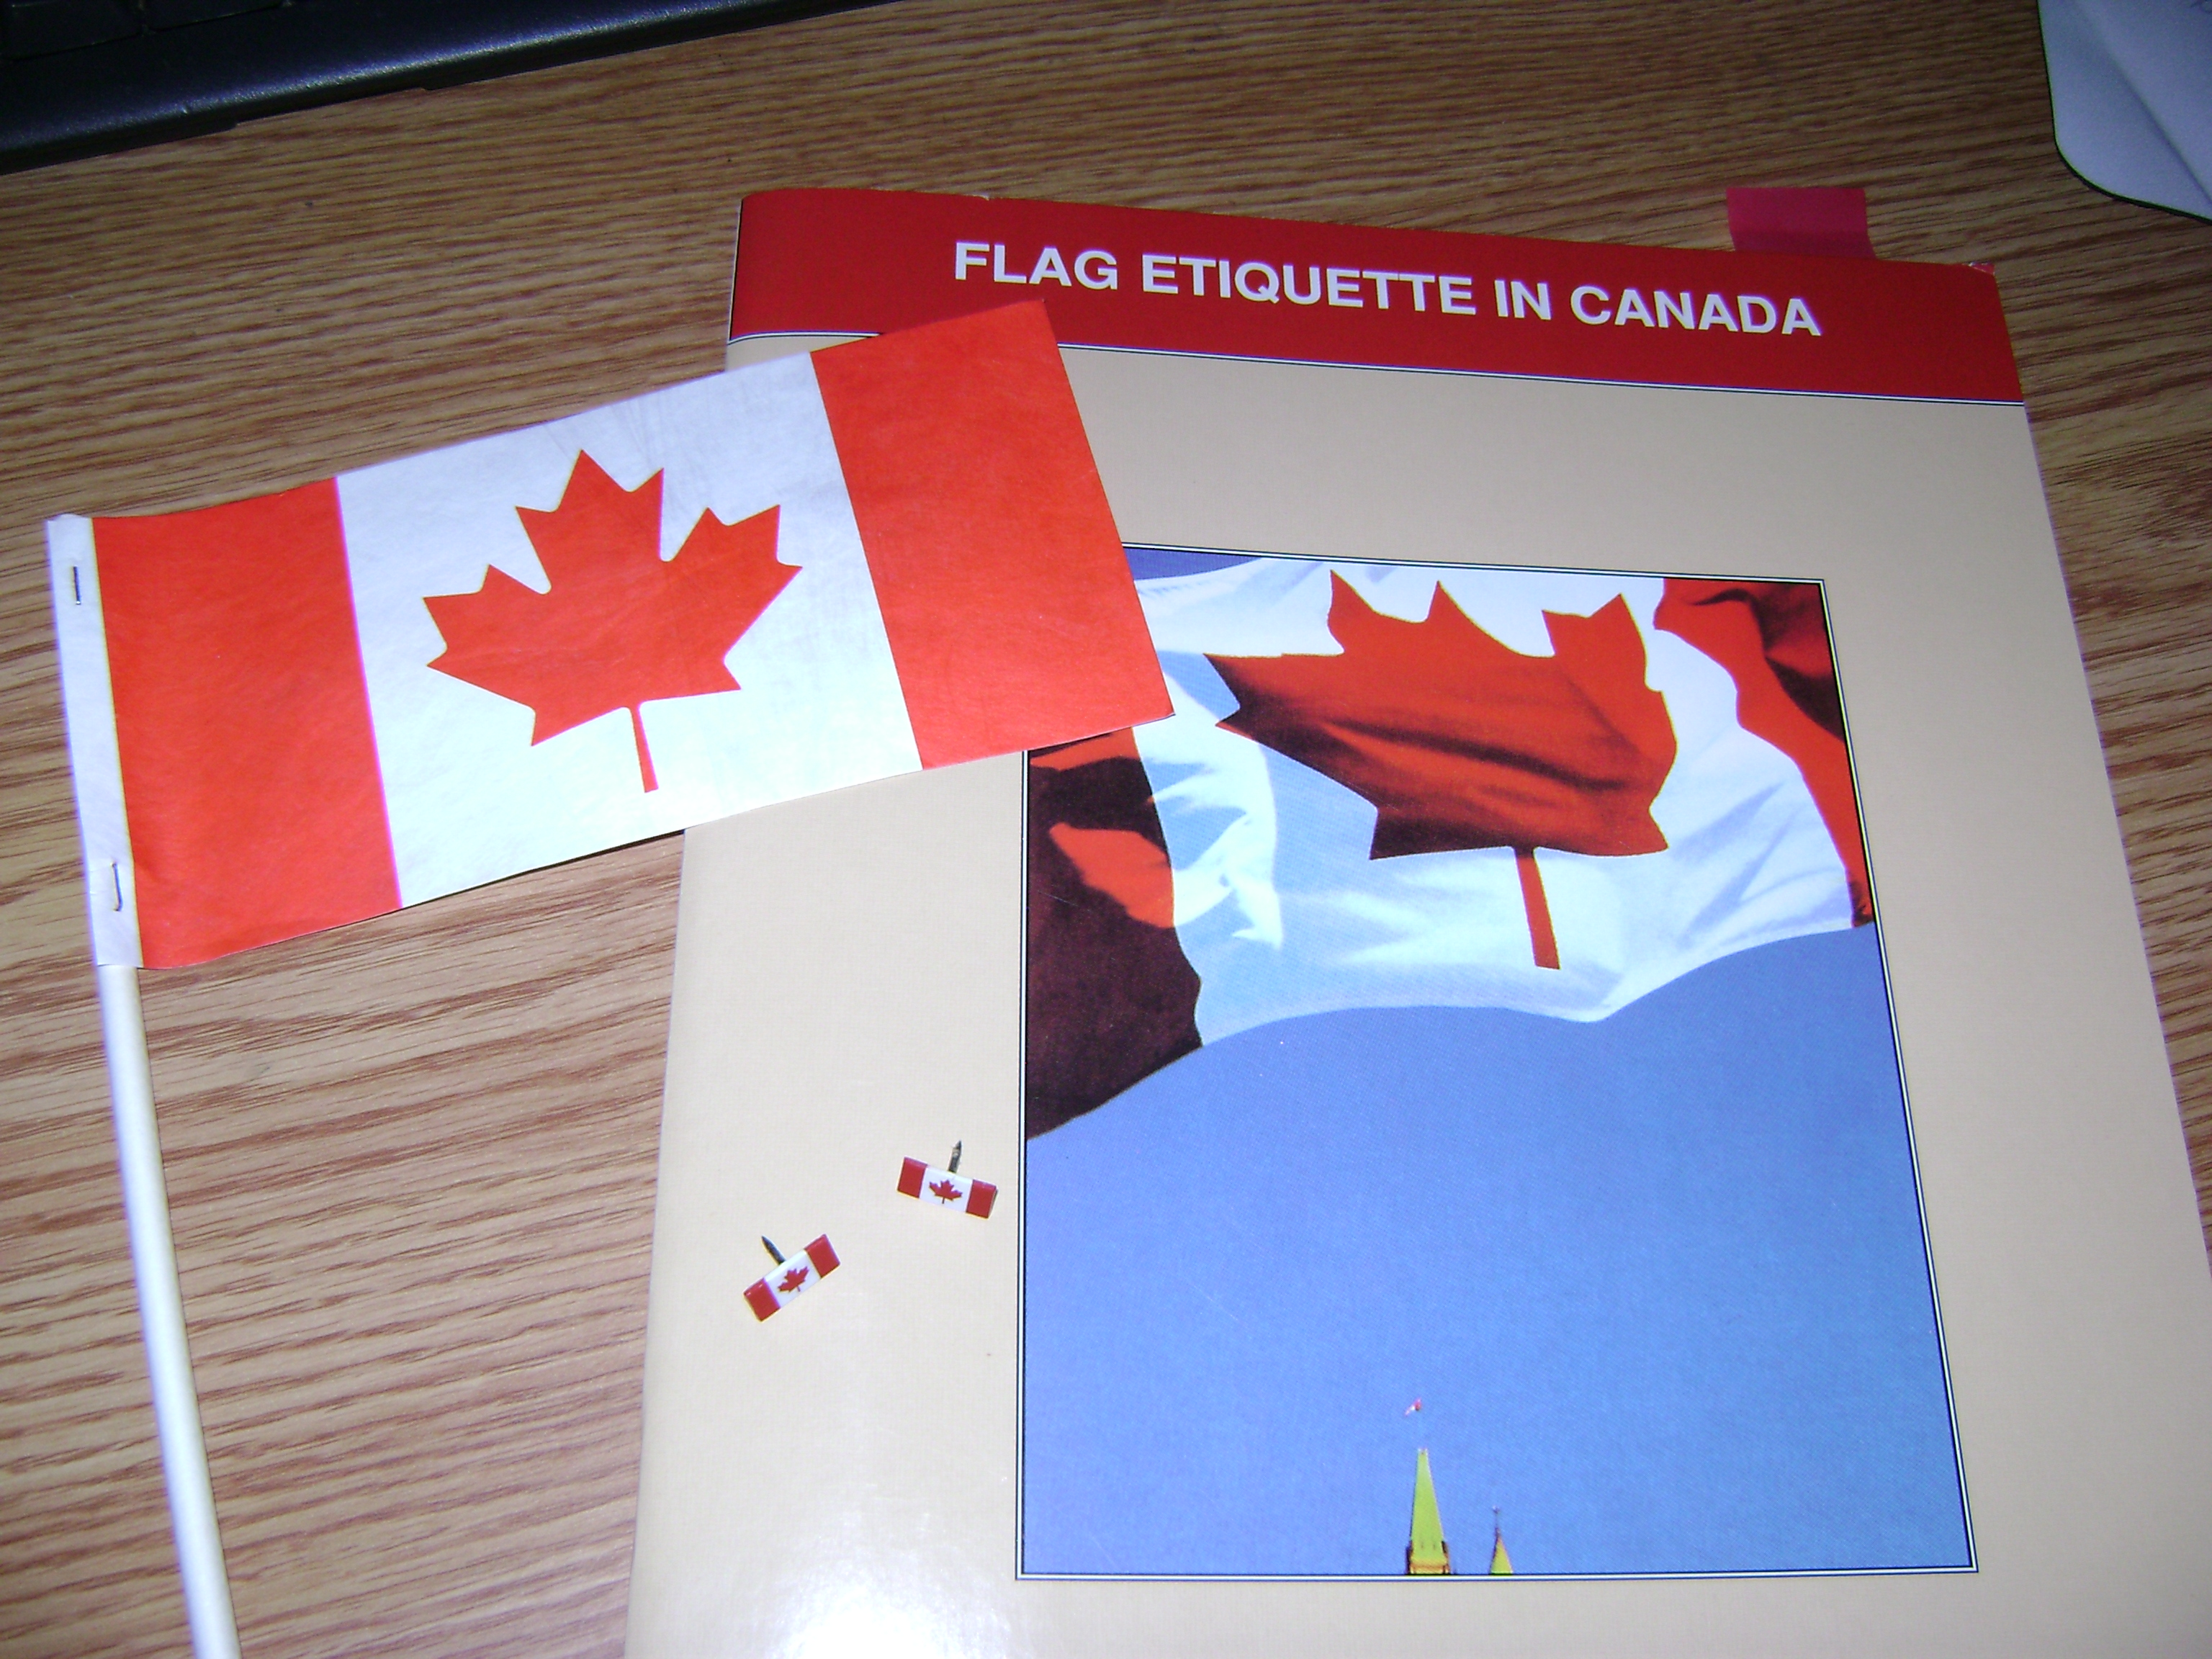 Items from the Canadian Parliamentary Flag Program, including a flag, book and pins